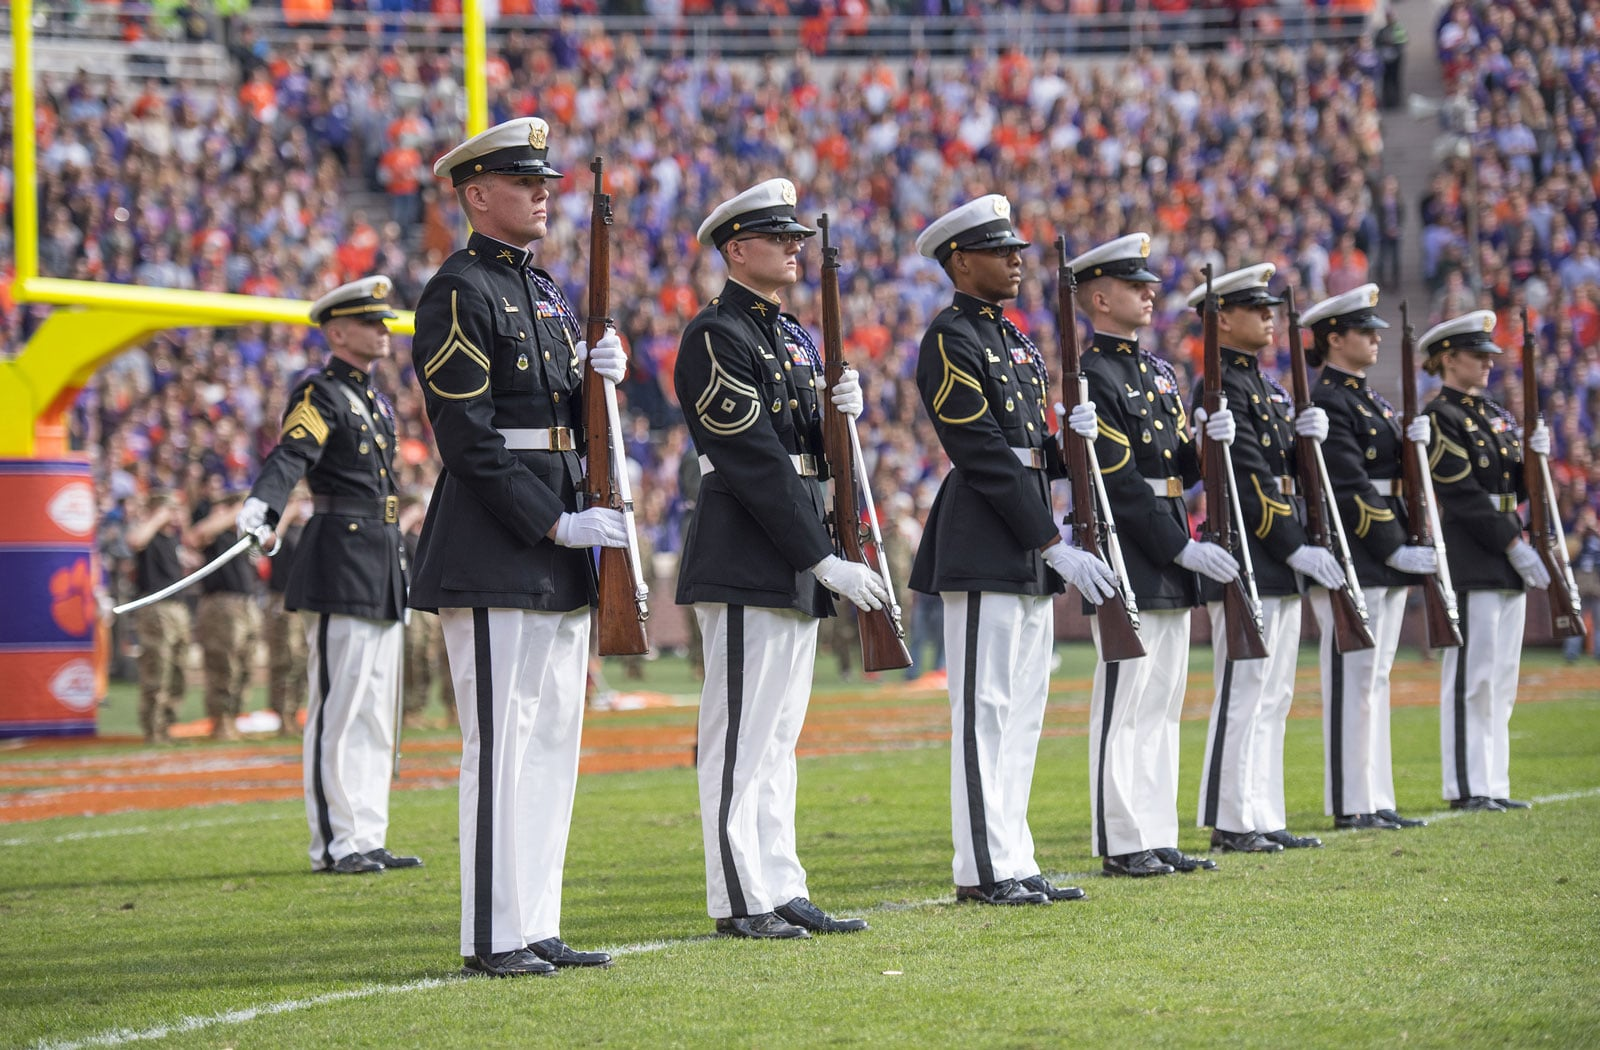 Three Clemson University Pershing Rifles present arms as a Fallen Soldier Battle Cross is erected at mid-field during the half time ceremony of the 2017 Military Appreciation Game.